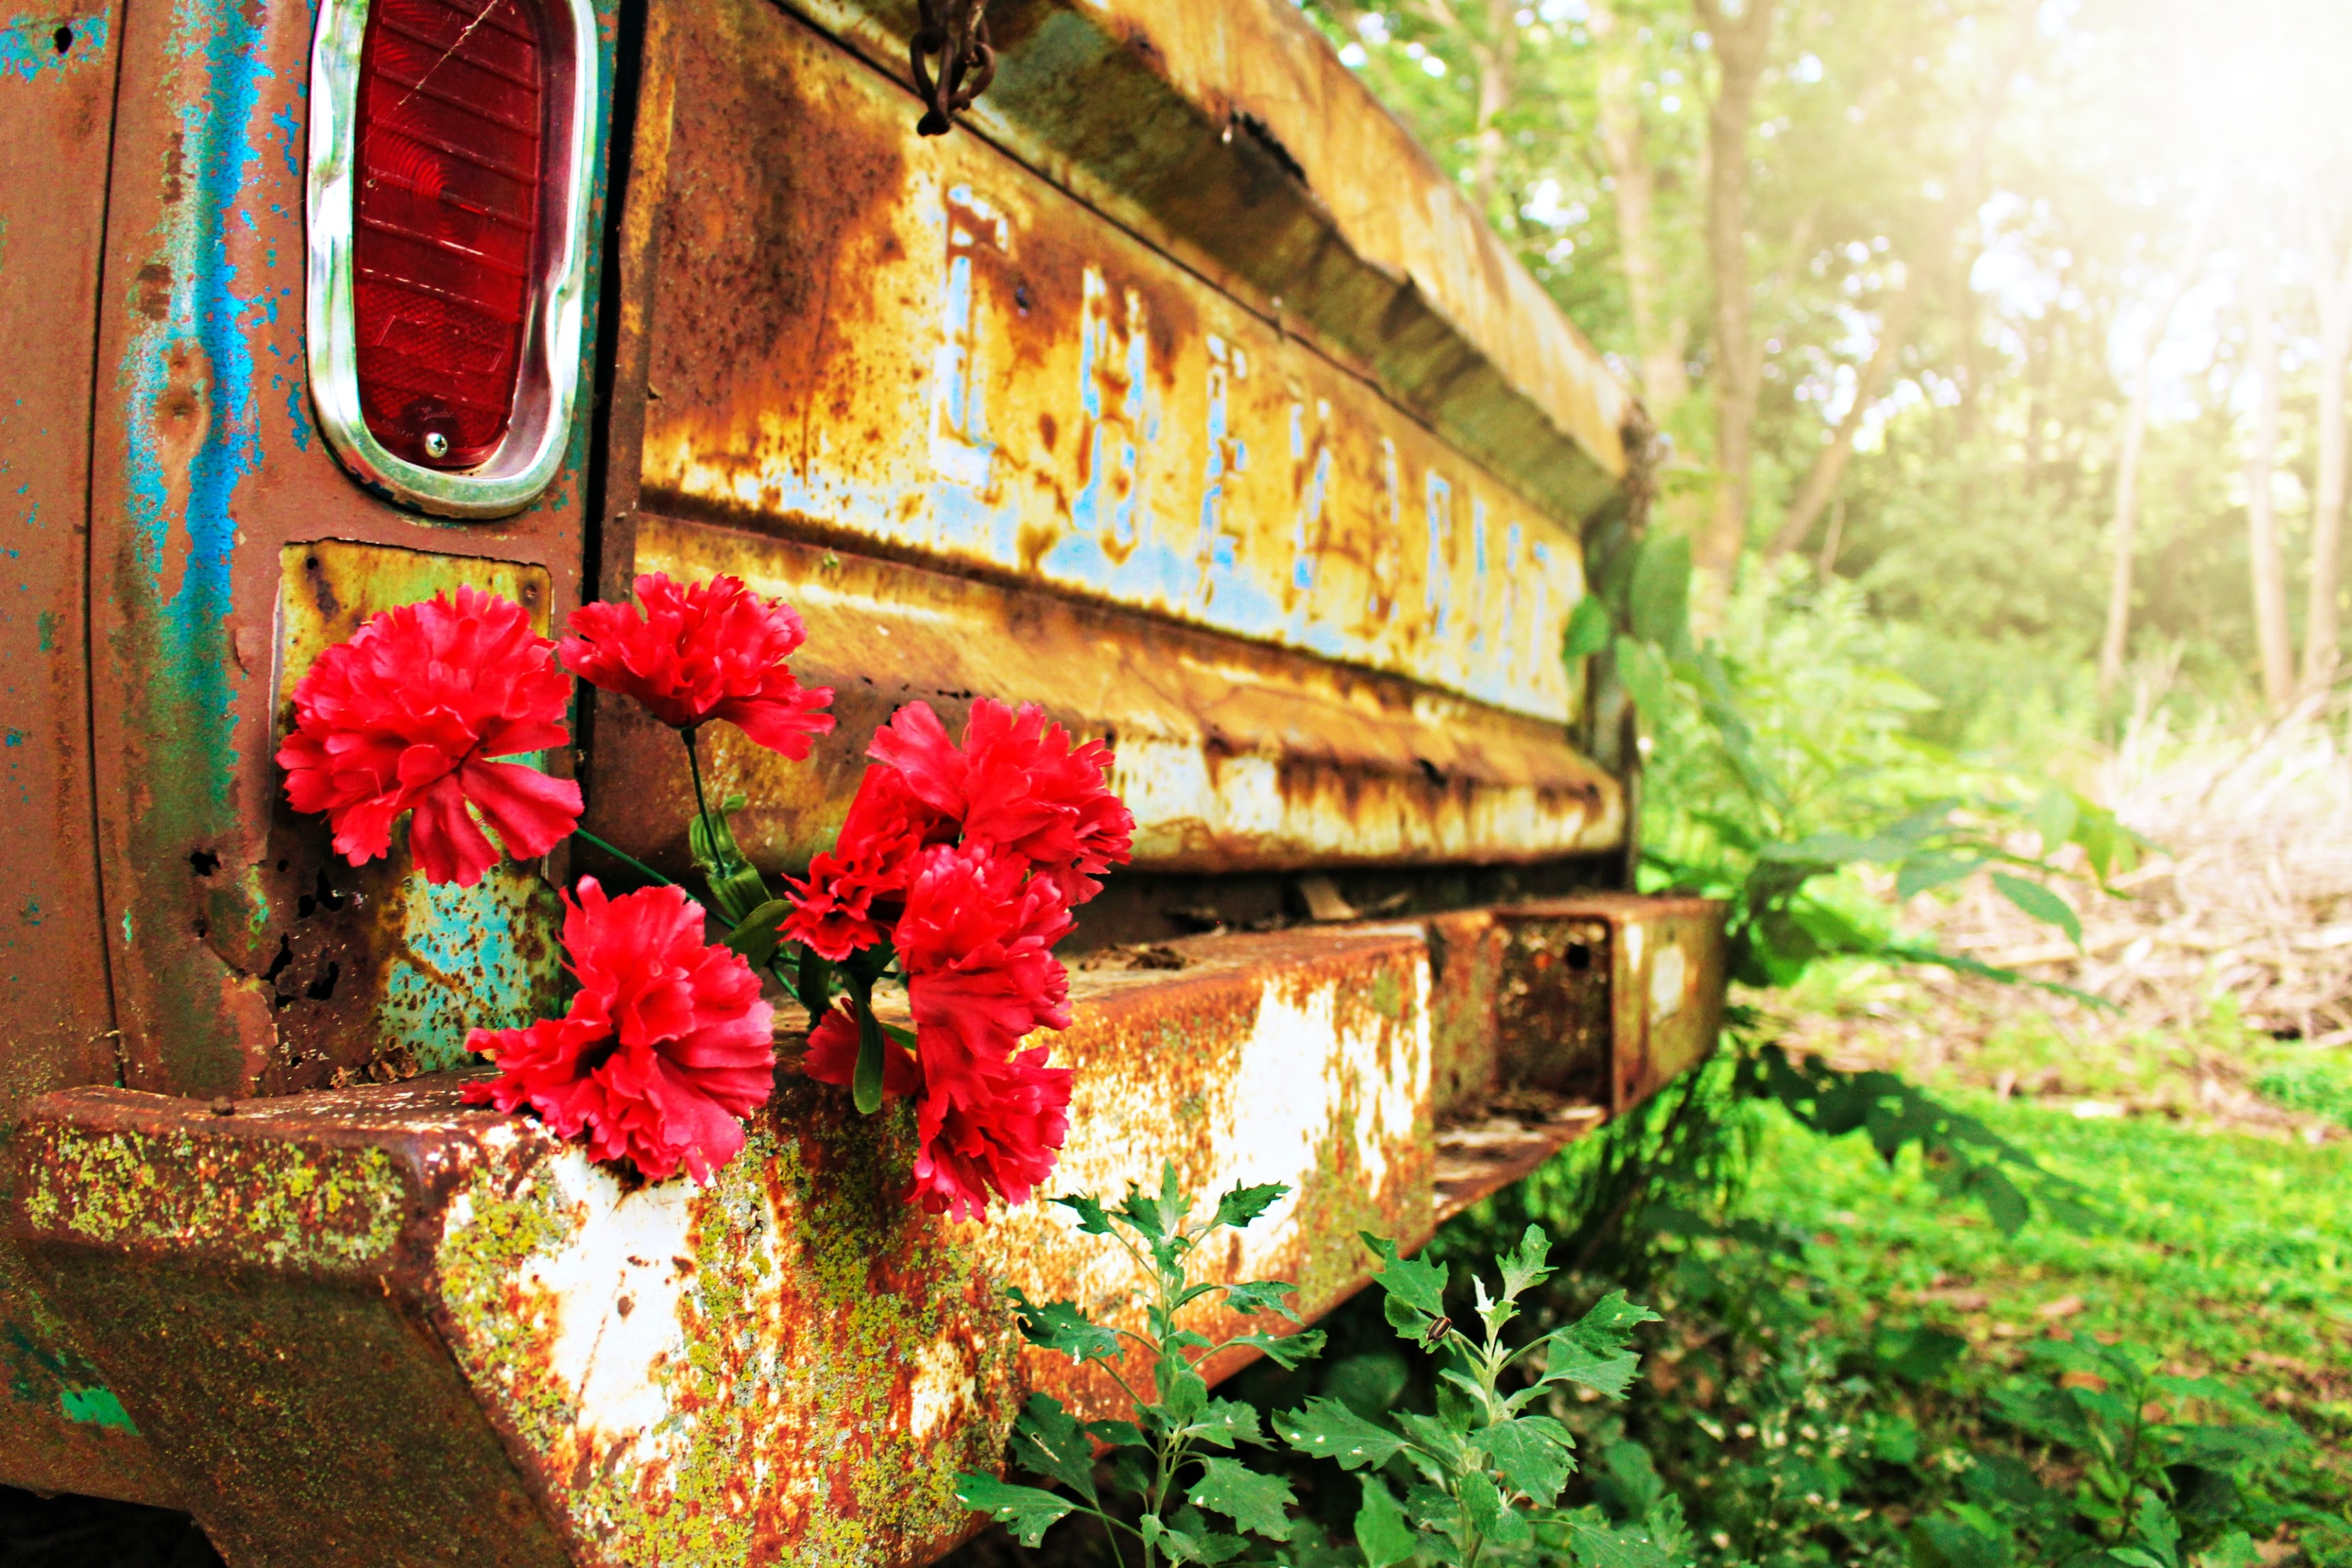 Red flowers on a rusty bumper of an old car